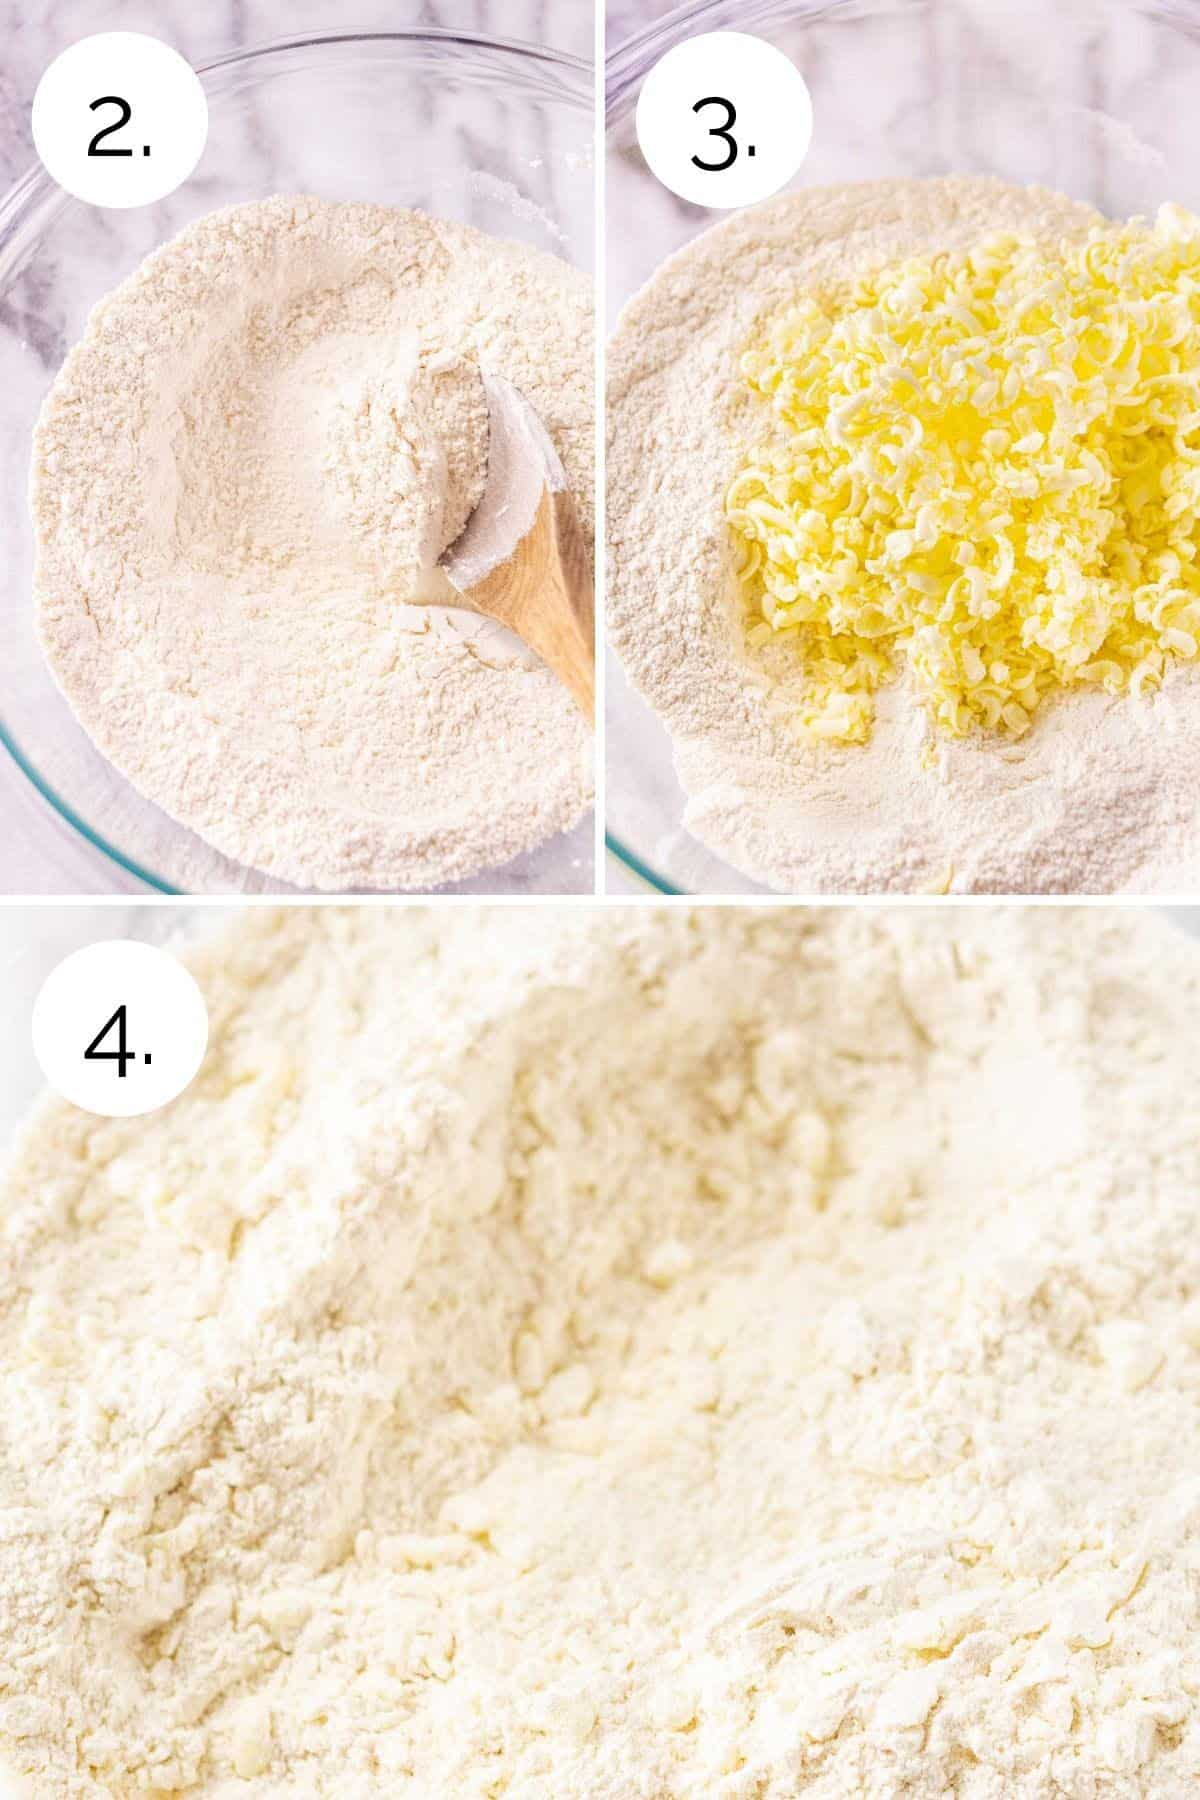 Showing the process of combining the dry ingredients and adding the frozen grated butter.